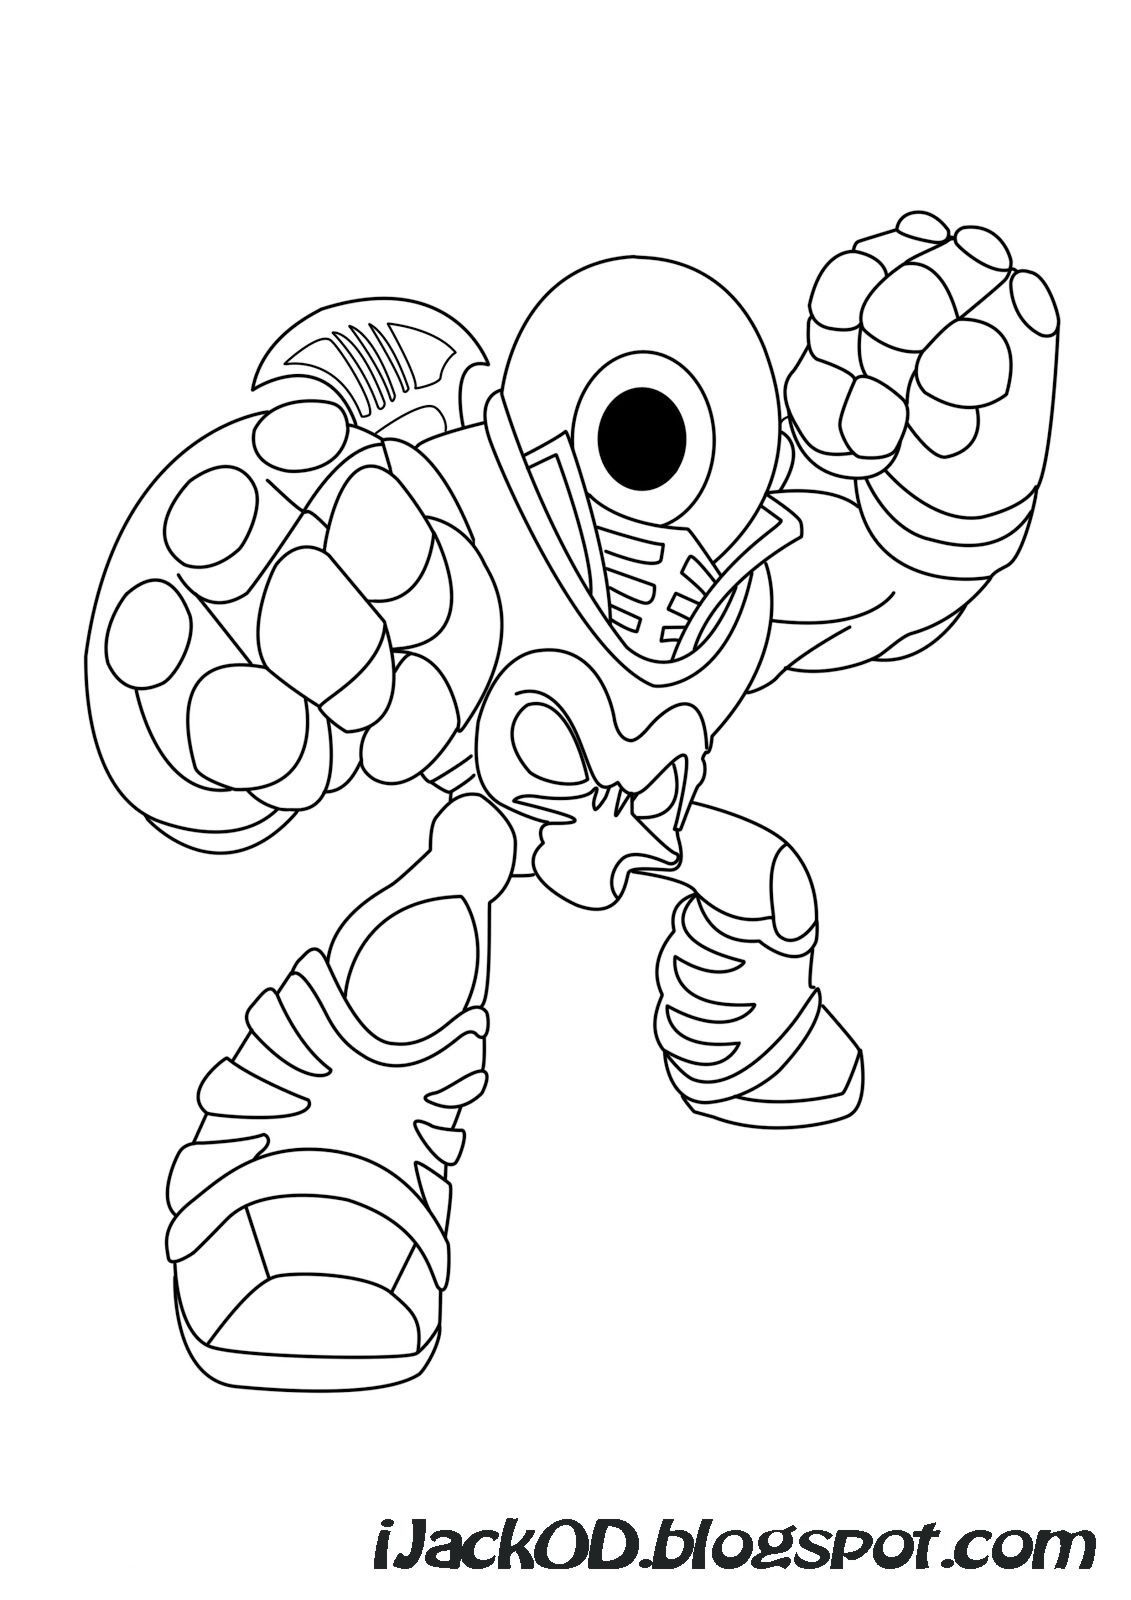 skylanders coloring pages dejau printable - photo#3